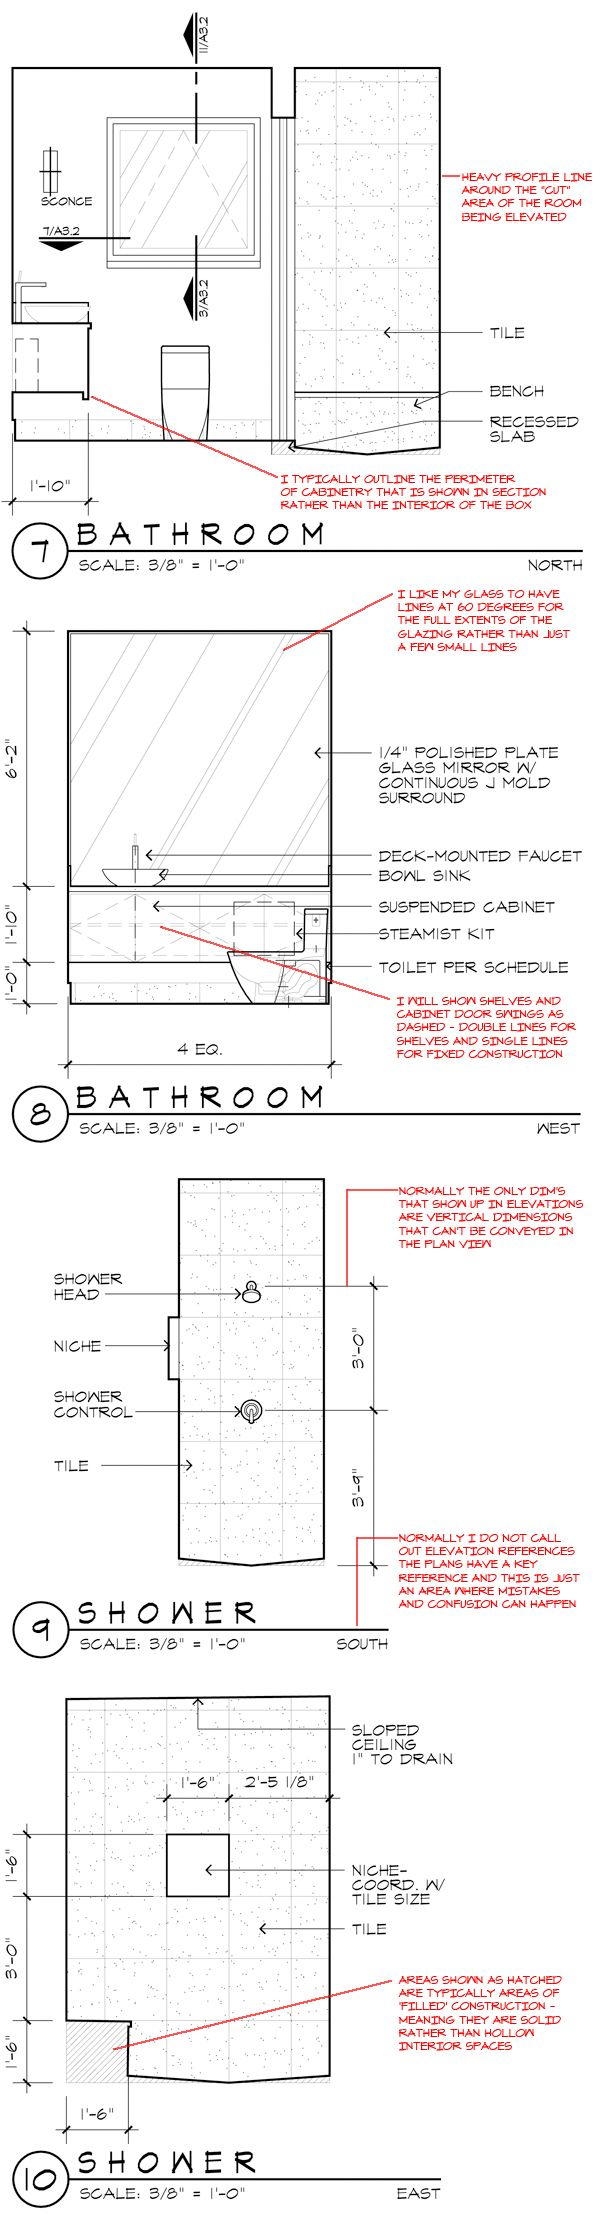 Bathroom section drawing - Interior Elevations Architectural Graphics Standards